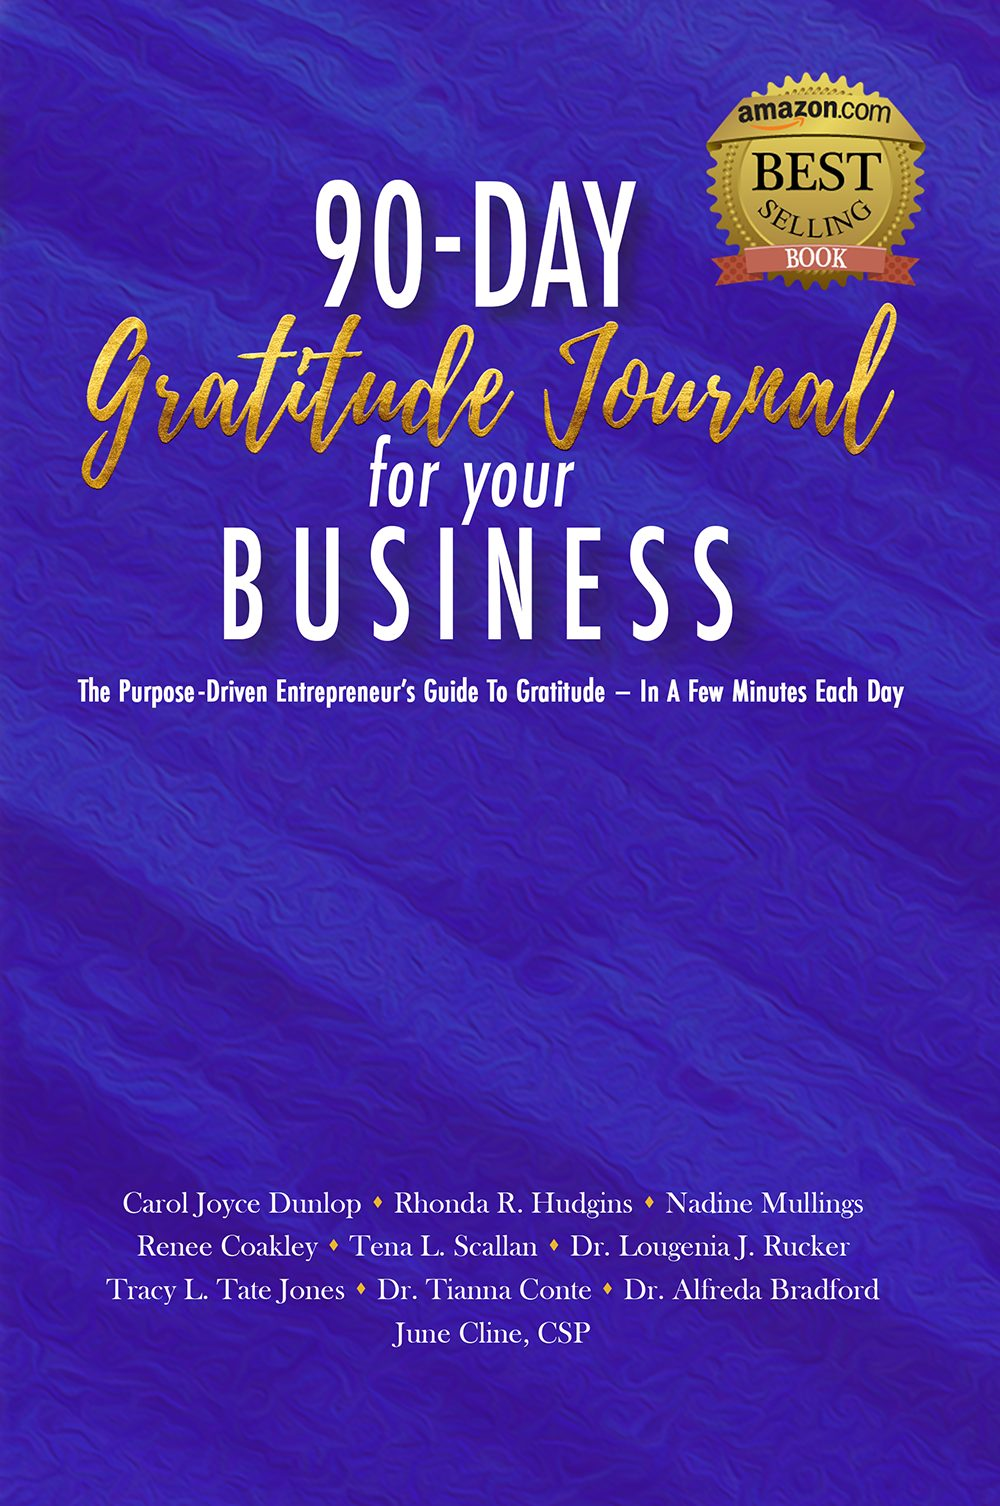 90-Day Gratitude Journal for Your Business